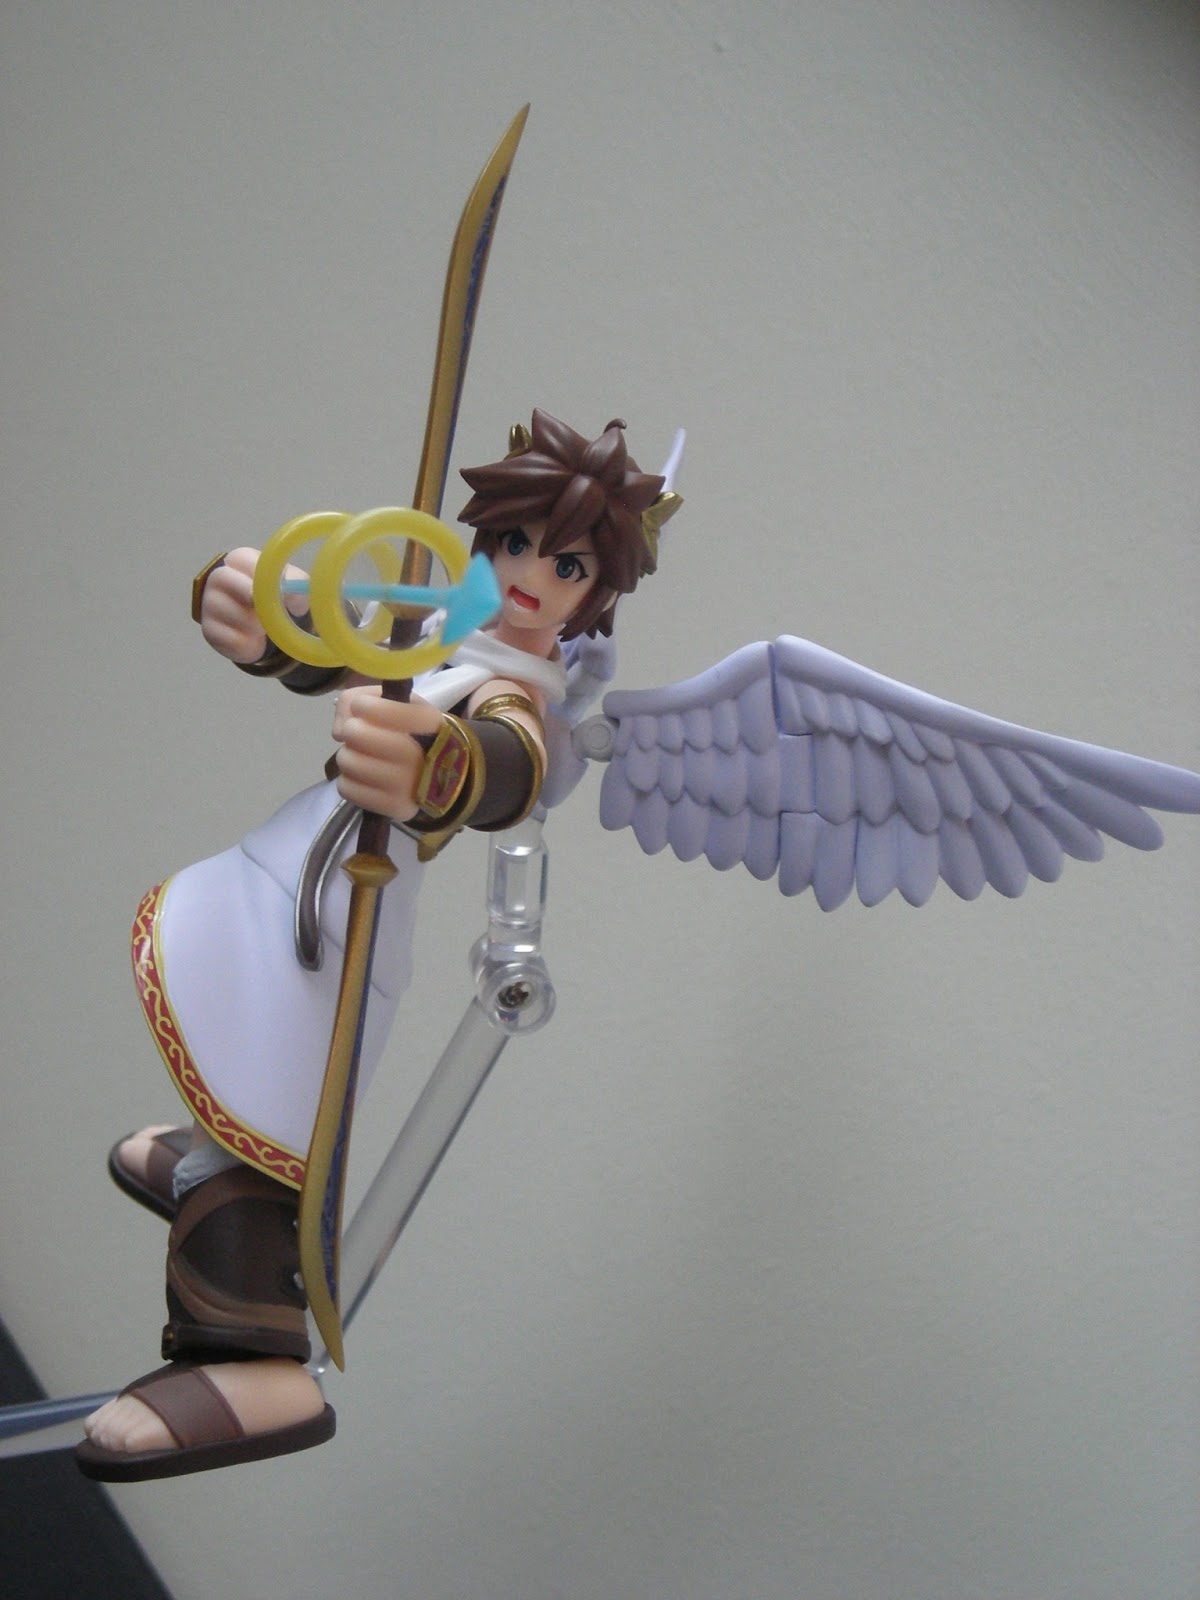 Toys Super Hero: Toybox REVIEW #109: Figma #175 Pit